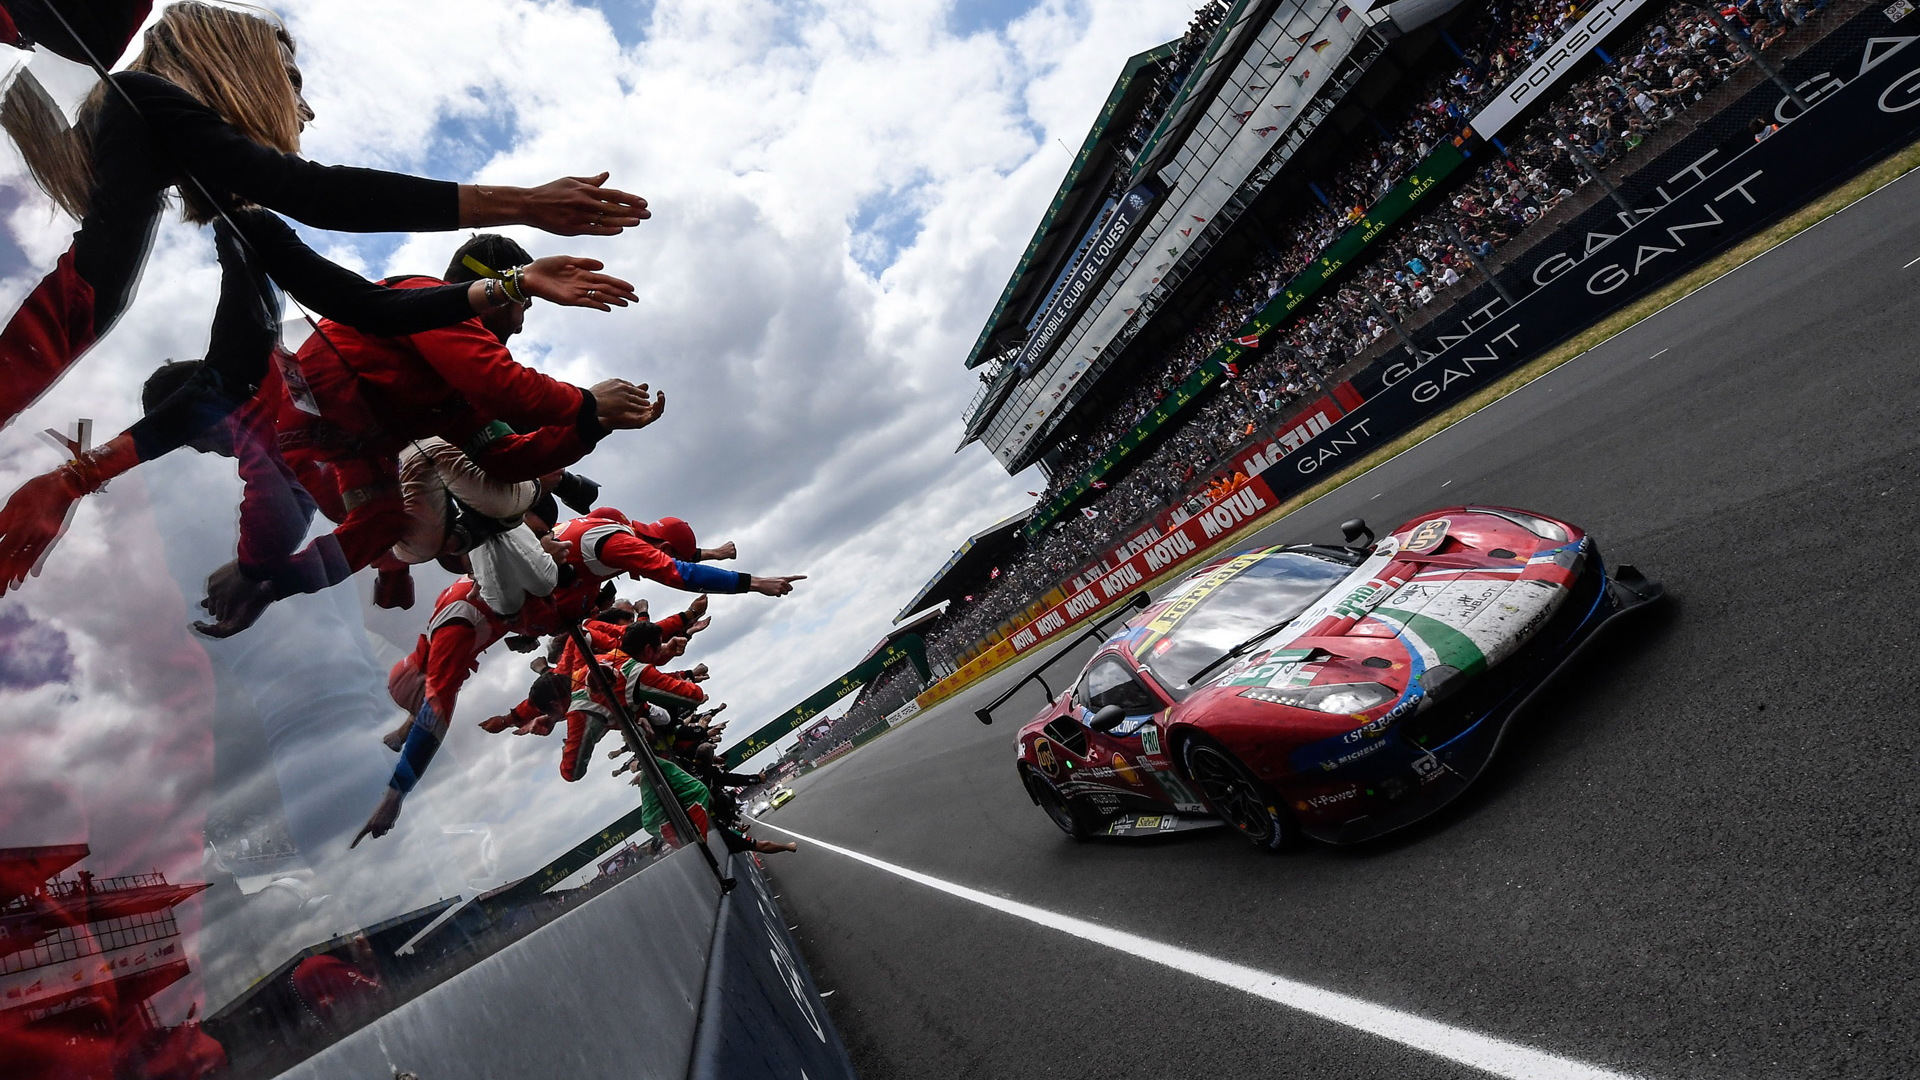 AF Corse/Ferrari at the 2019 24 Hours of Le Mans